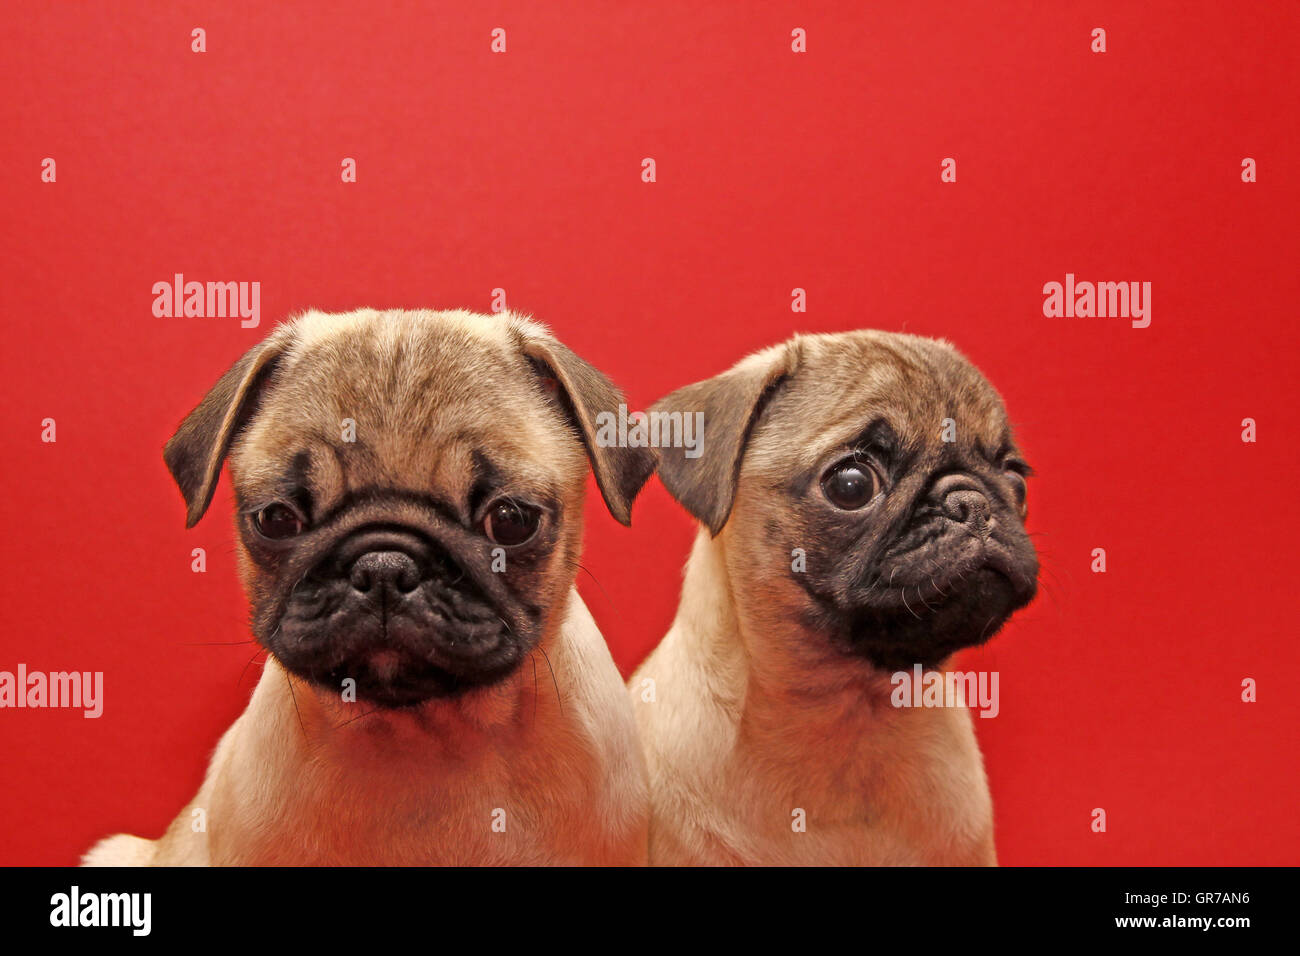 Two Young 10 Weeks Old Pugs - Stock Image